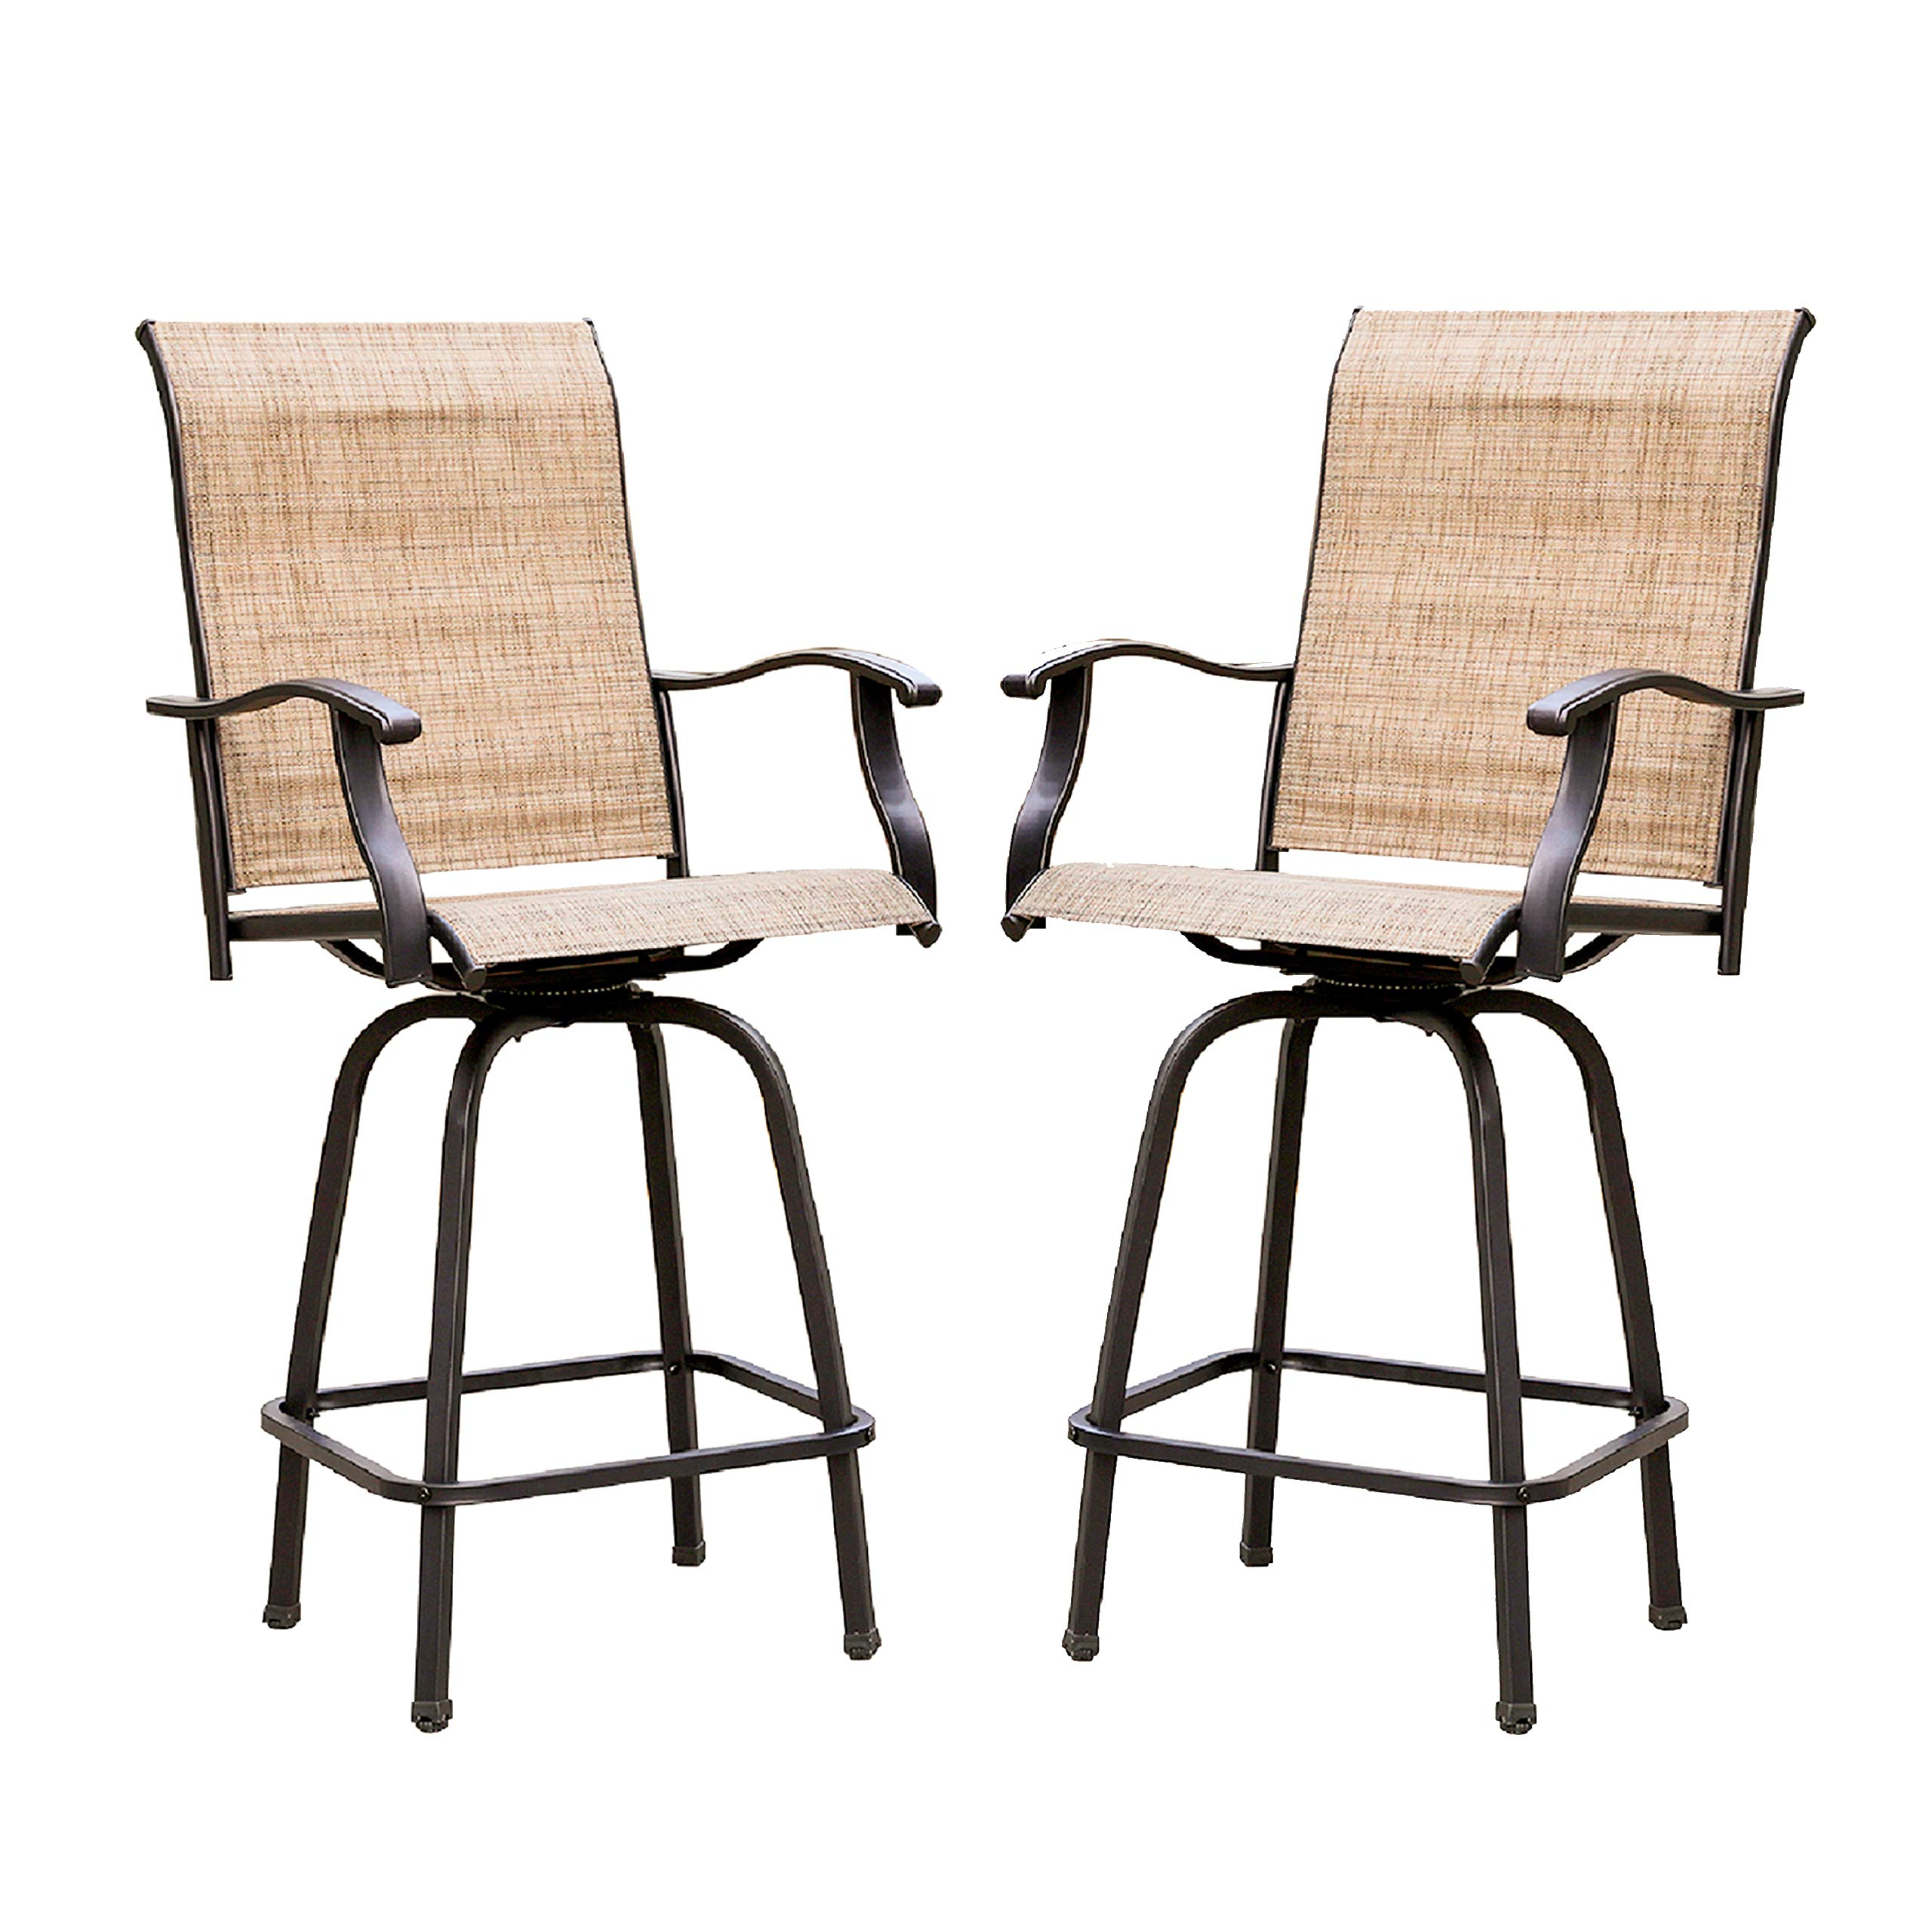 LOKATSE HOME 2 Piece Swivel Bar Stools Outdoor High Patio Chairs Furniture with All Weather Metal Frame, Beige-2chairs by LOKATSE HOME (Image #1)